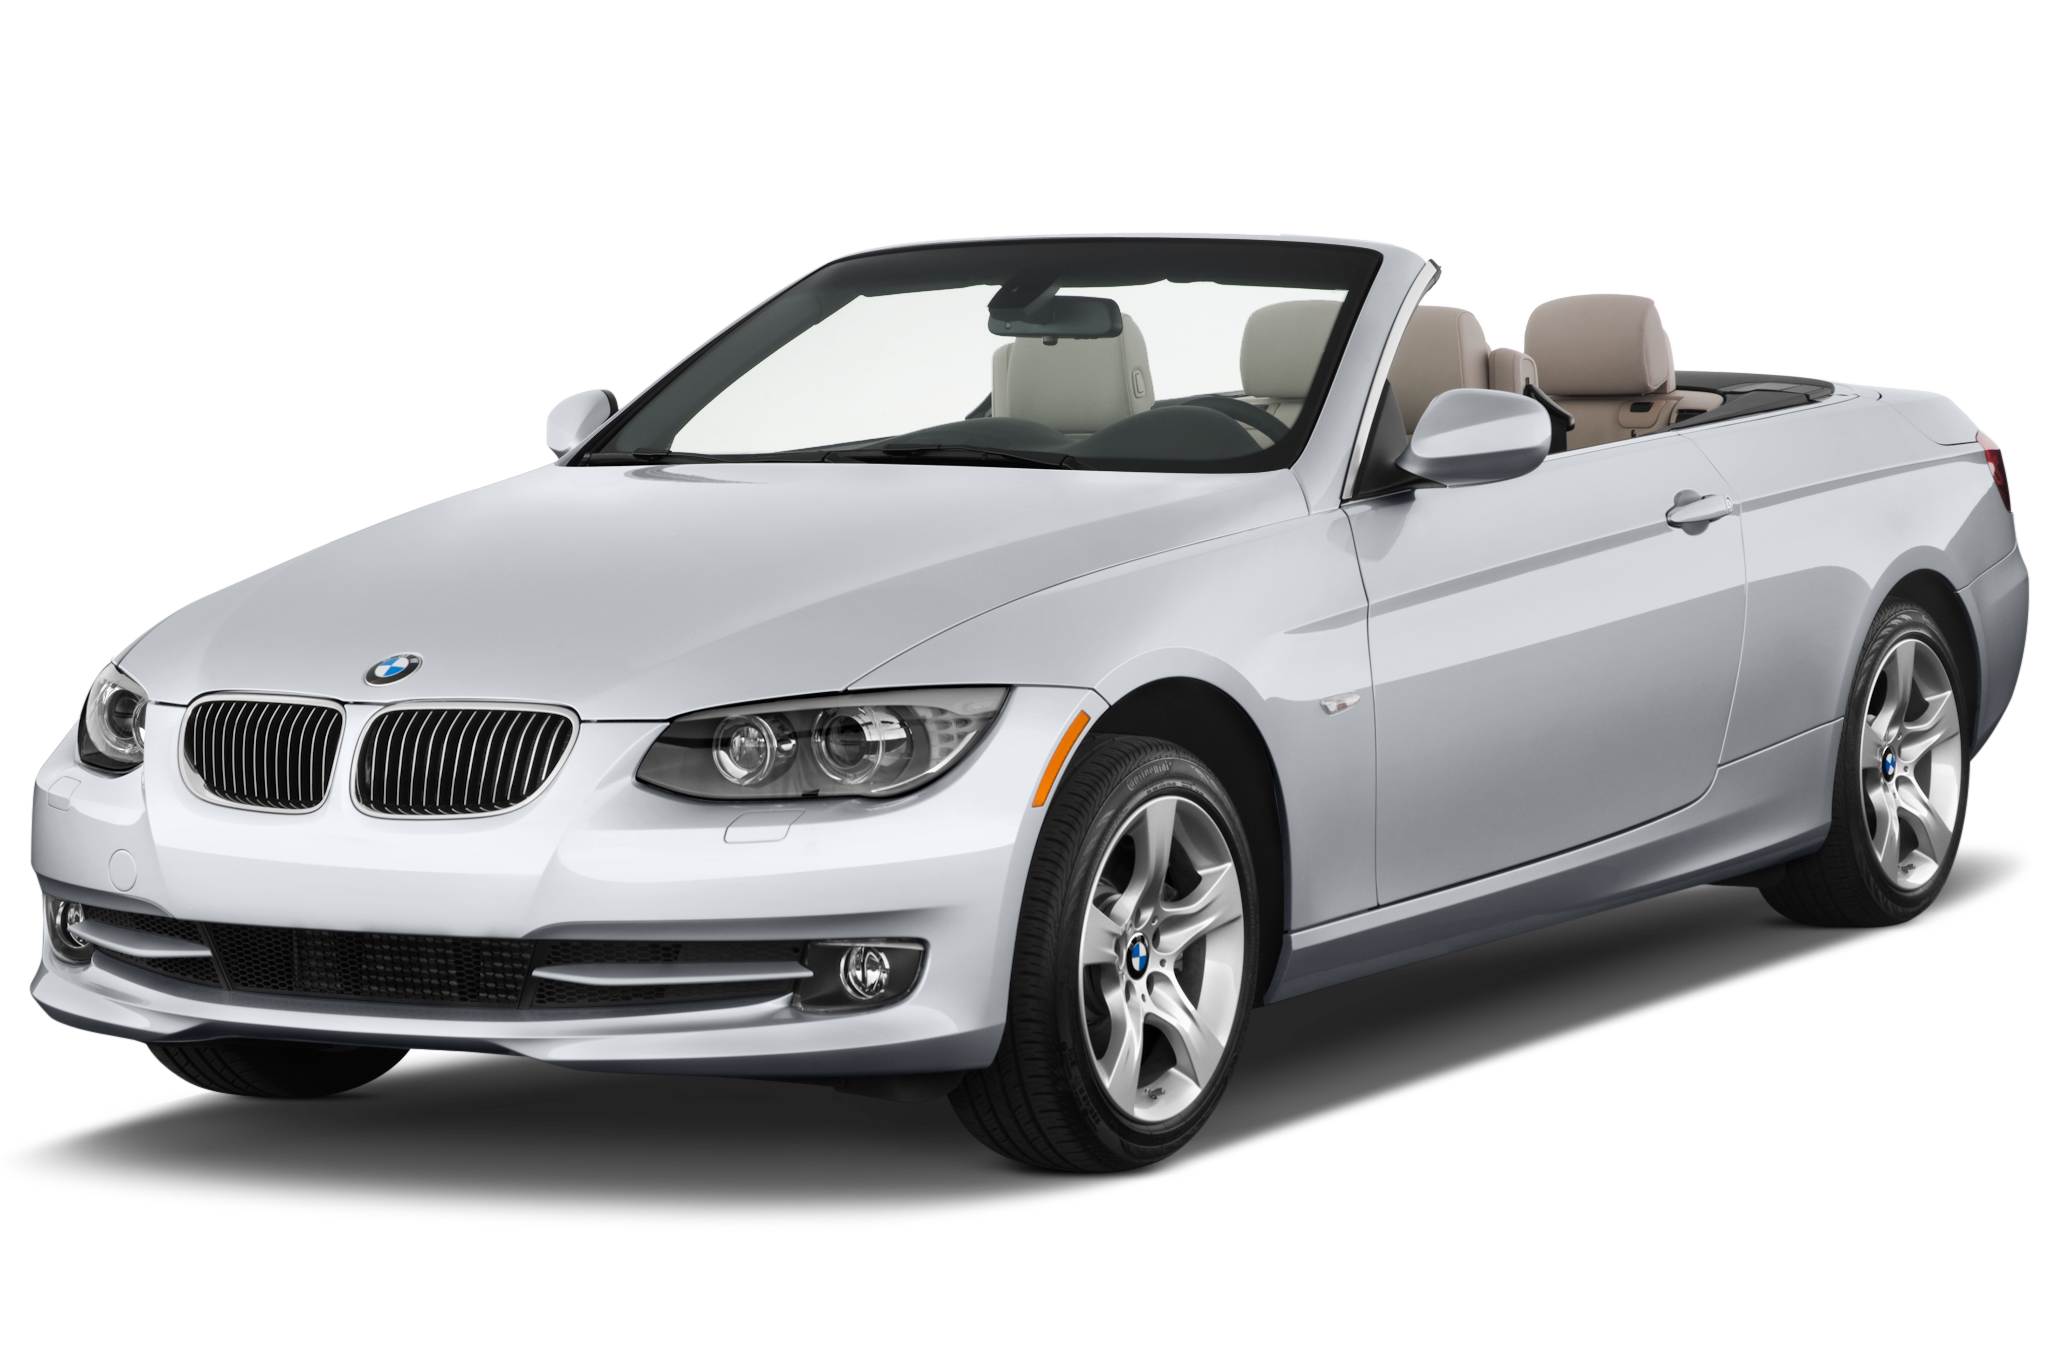 2013 bmw 3 series 335i convertible specs and features msn autos - 2013 bmw 335i coupe specs ...